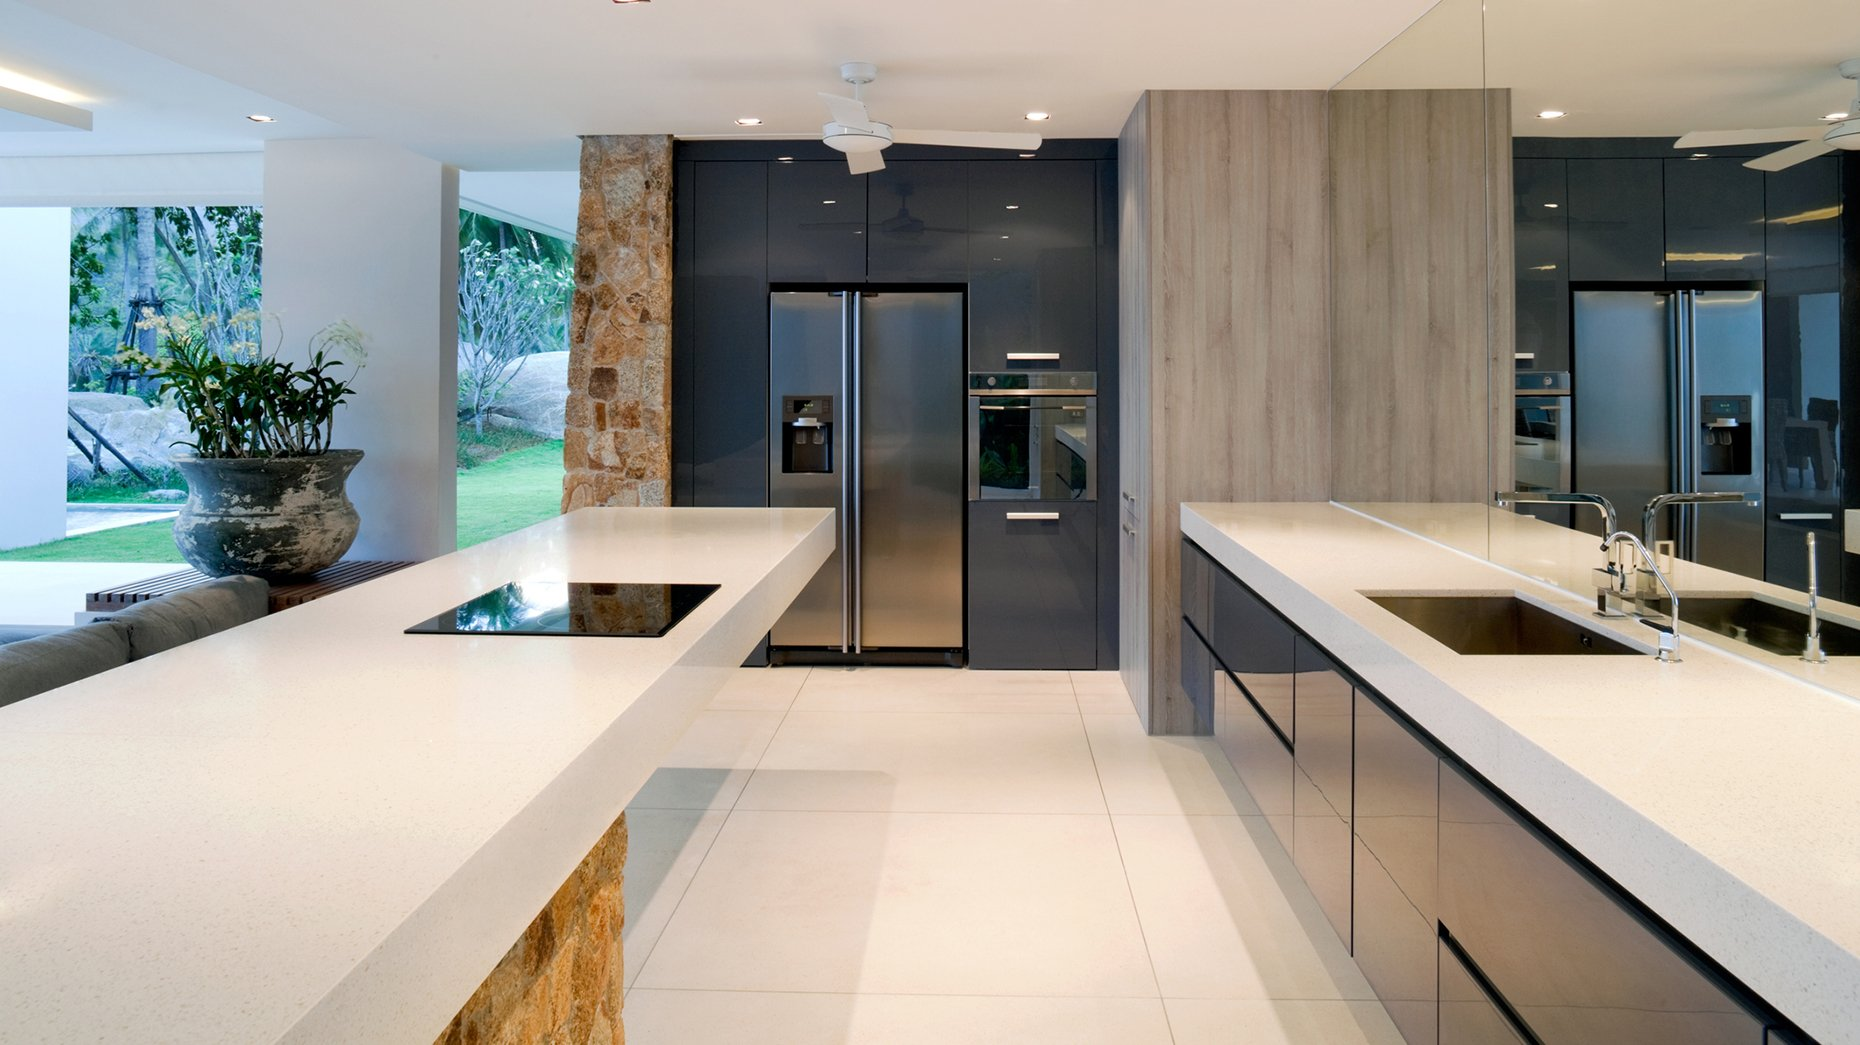 5 Luxury Kitchen Design Trends To Look Out For In 2021 Inman